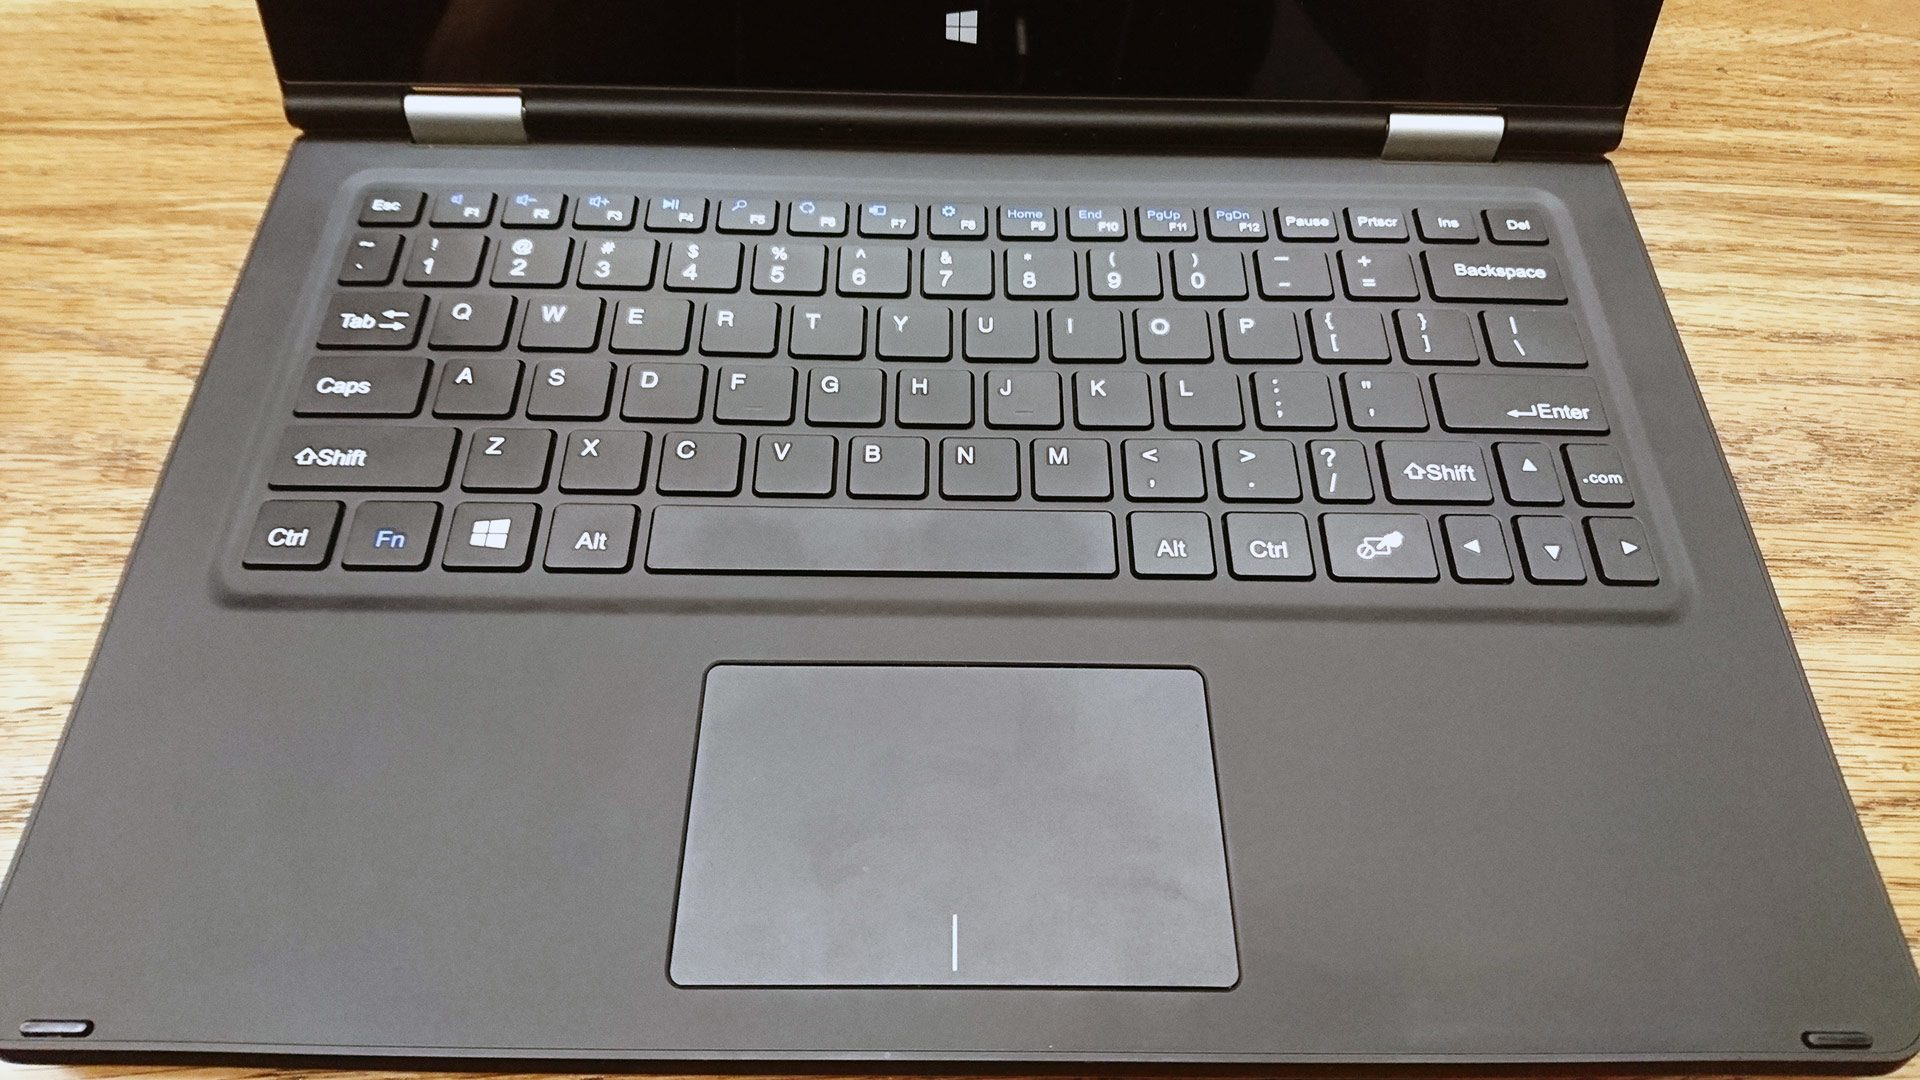 The keyboard is half-decent on this thing, but the trackpad is crappy